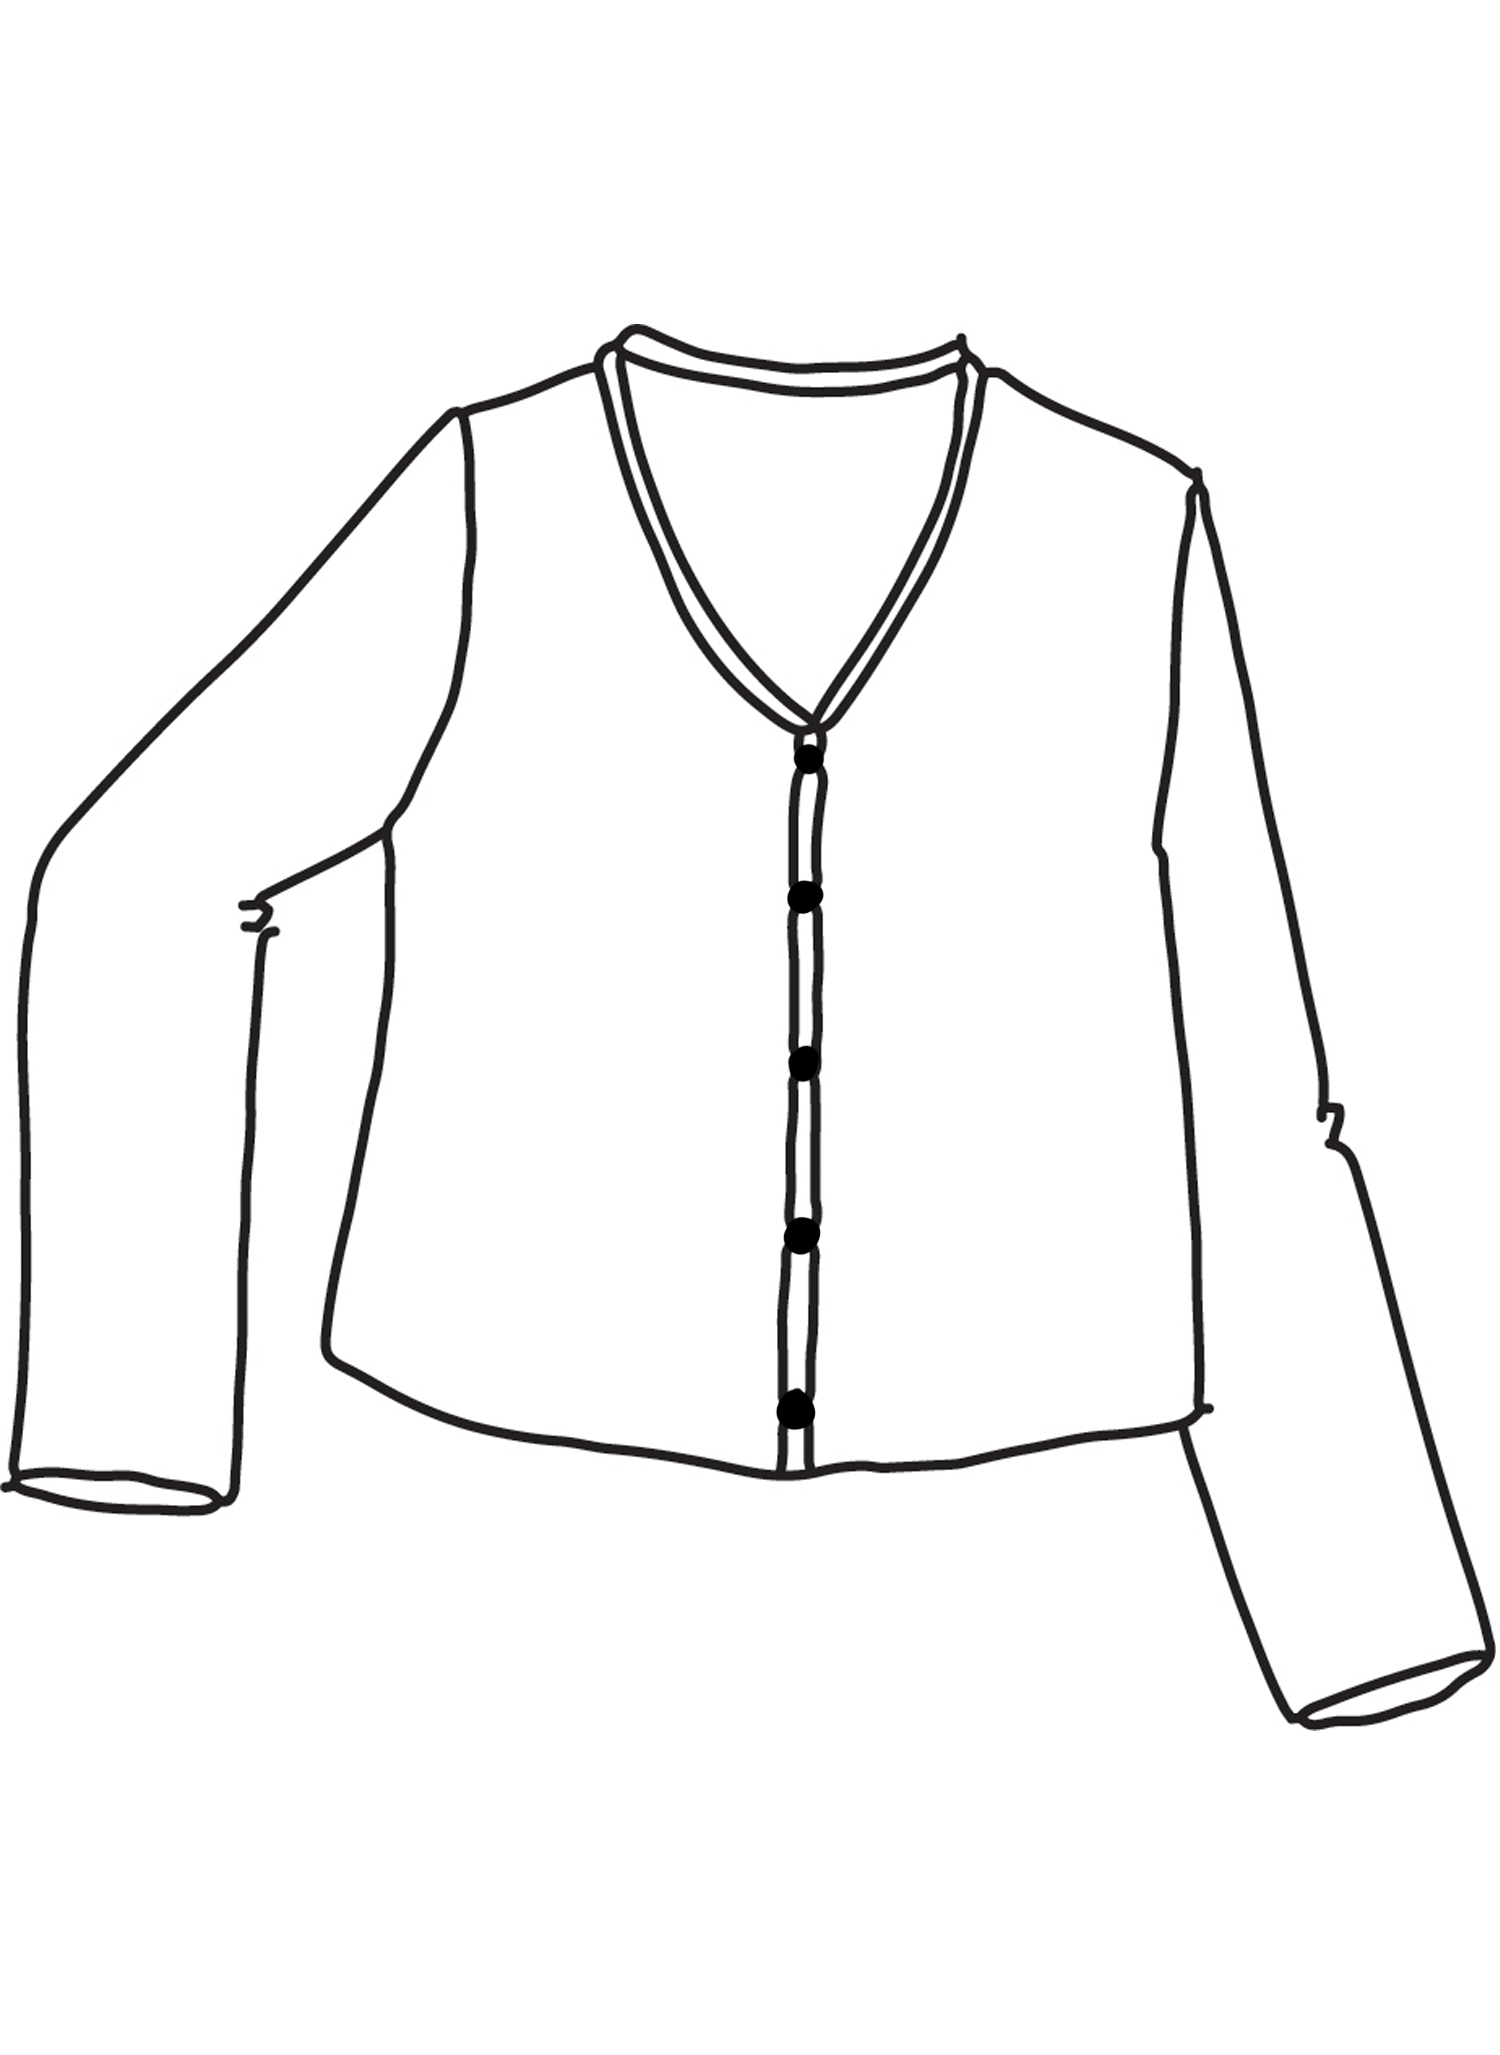 V Neck Cute Cardi sketch image